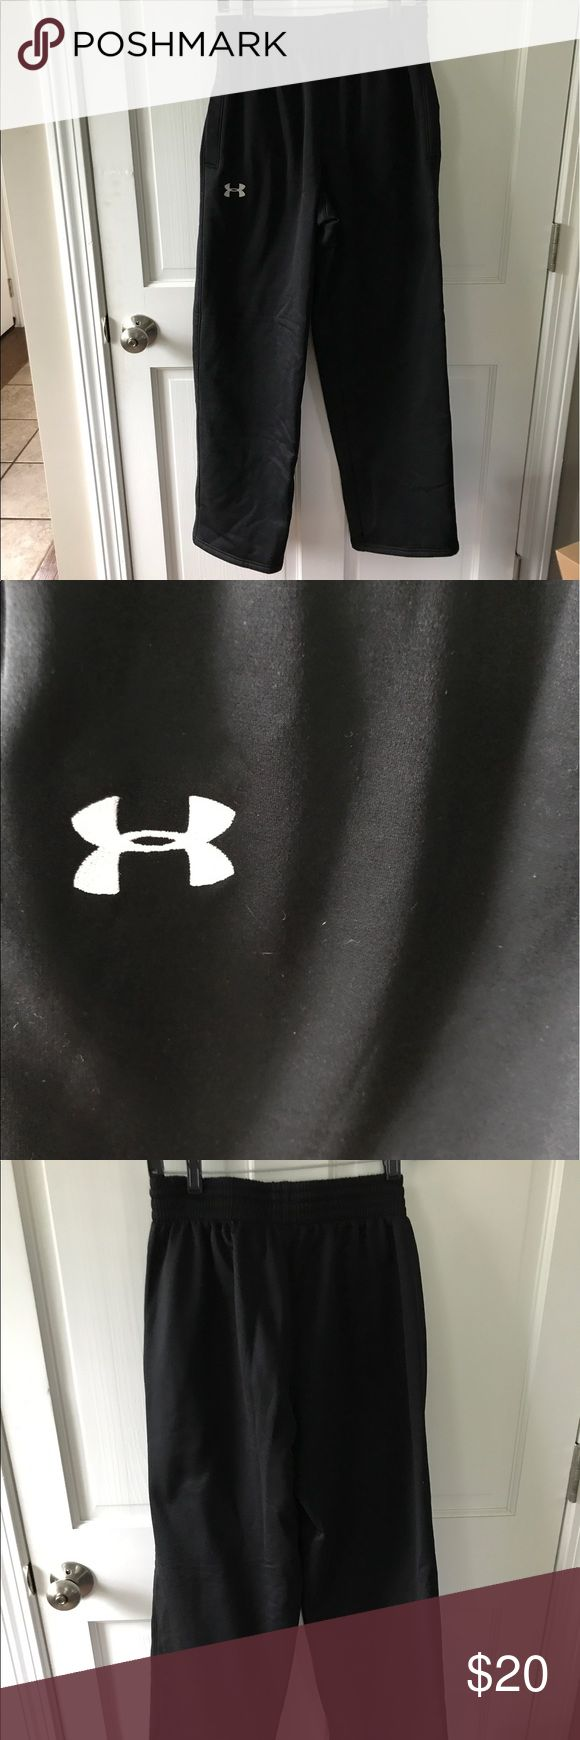 Under Amour sweat pants Like new only worn a couple times. Black under armour sweat pants. Really warm and comfortable. Under Armour Pants Sweatpants & Joggers